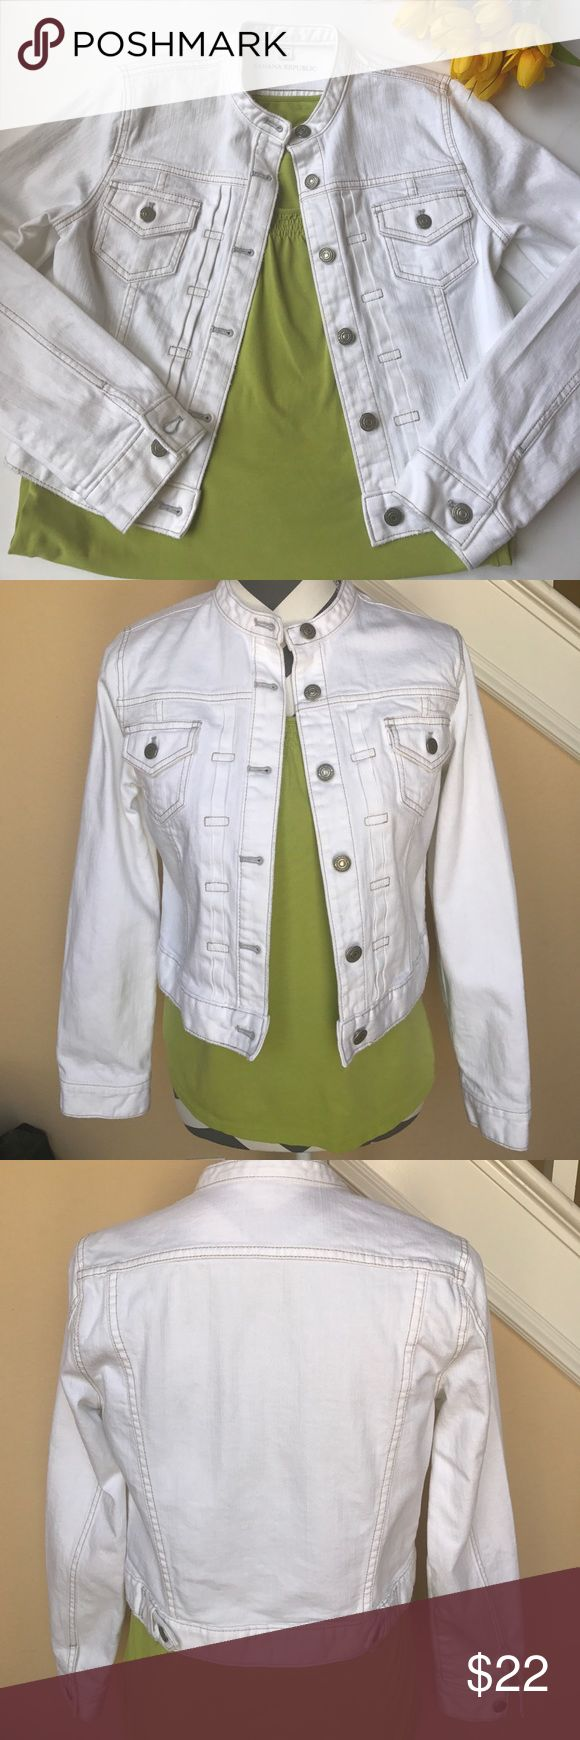 Banana republic stretch denim jacket. Banana republic stretch denim jacket. In good used condition. Has a slight mark on the left arm. Noted in pictures. Not really that visible. Perfect light weight jacket for spring. Banana Republic Jackets & Coats Jean Jackets